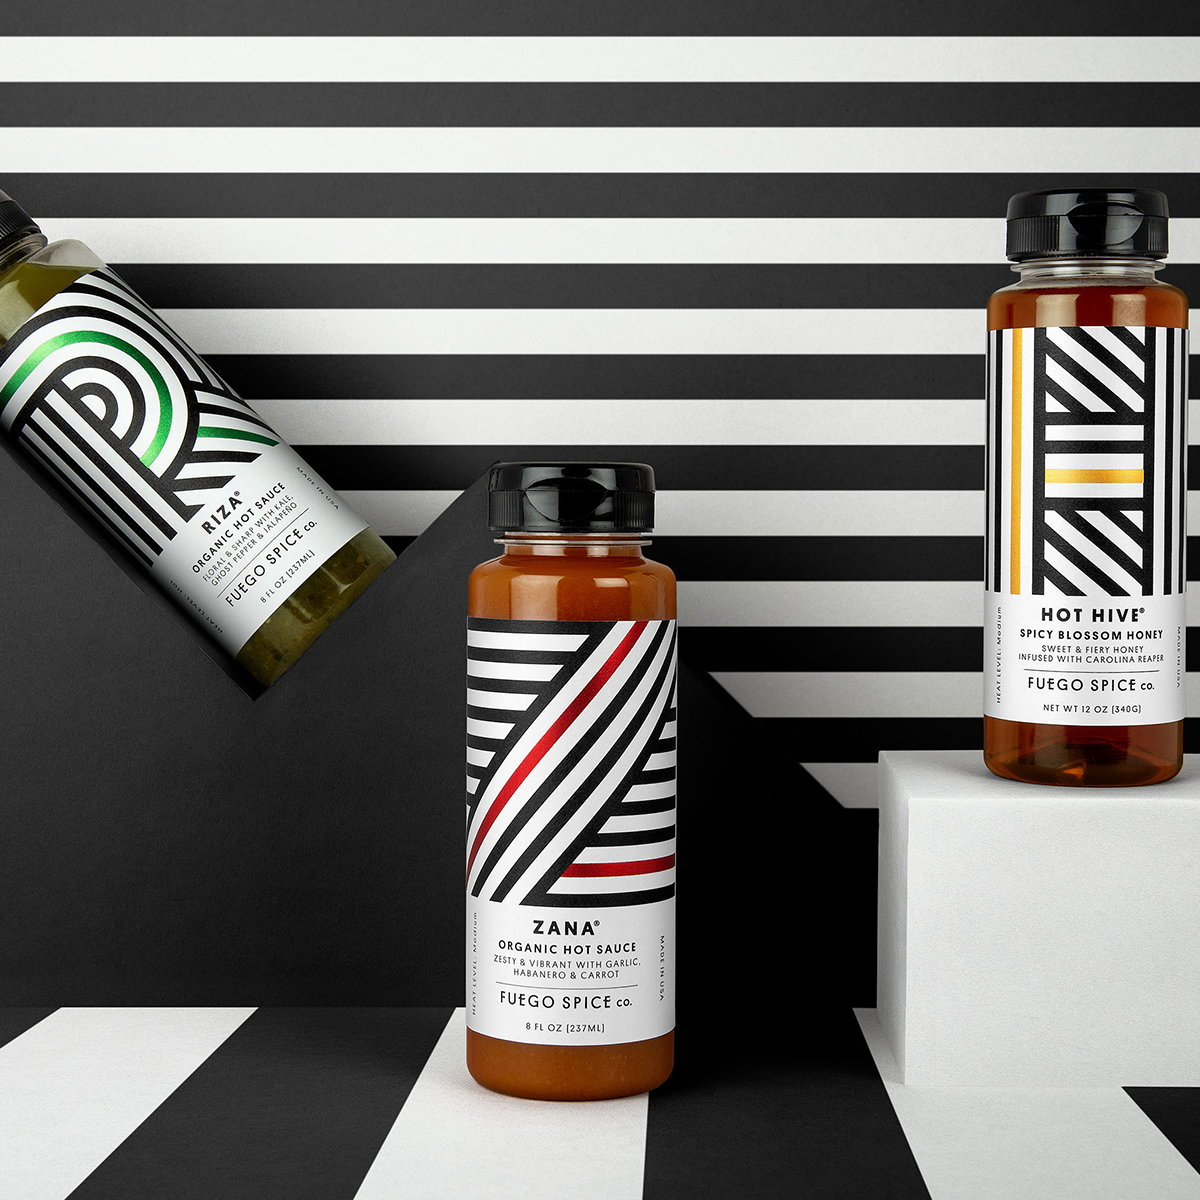 Robot Food Gives Fuego Spice Co. a Suitably Sizzling Rebrand